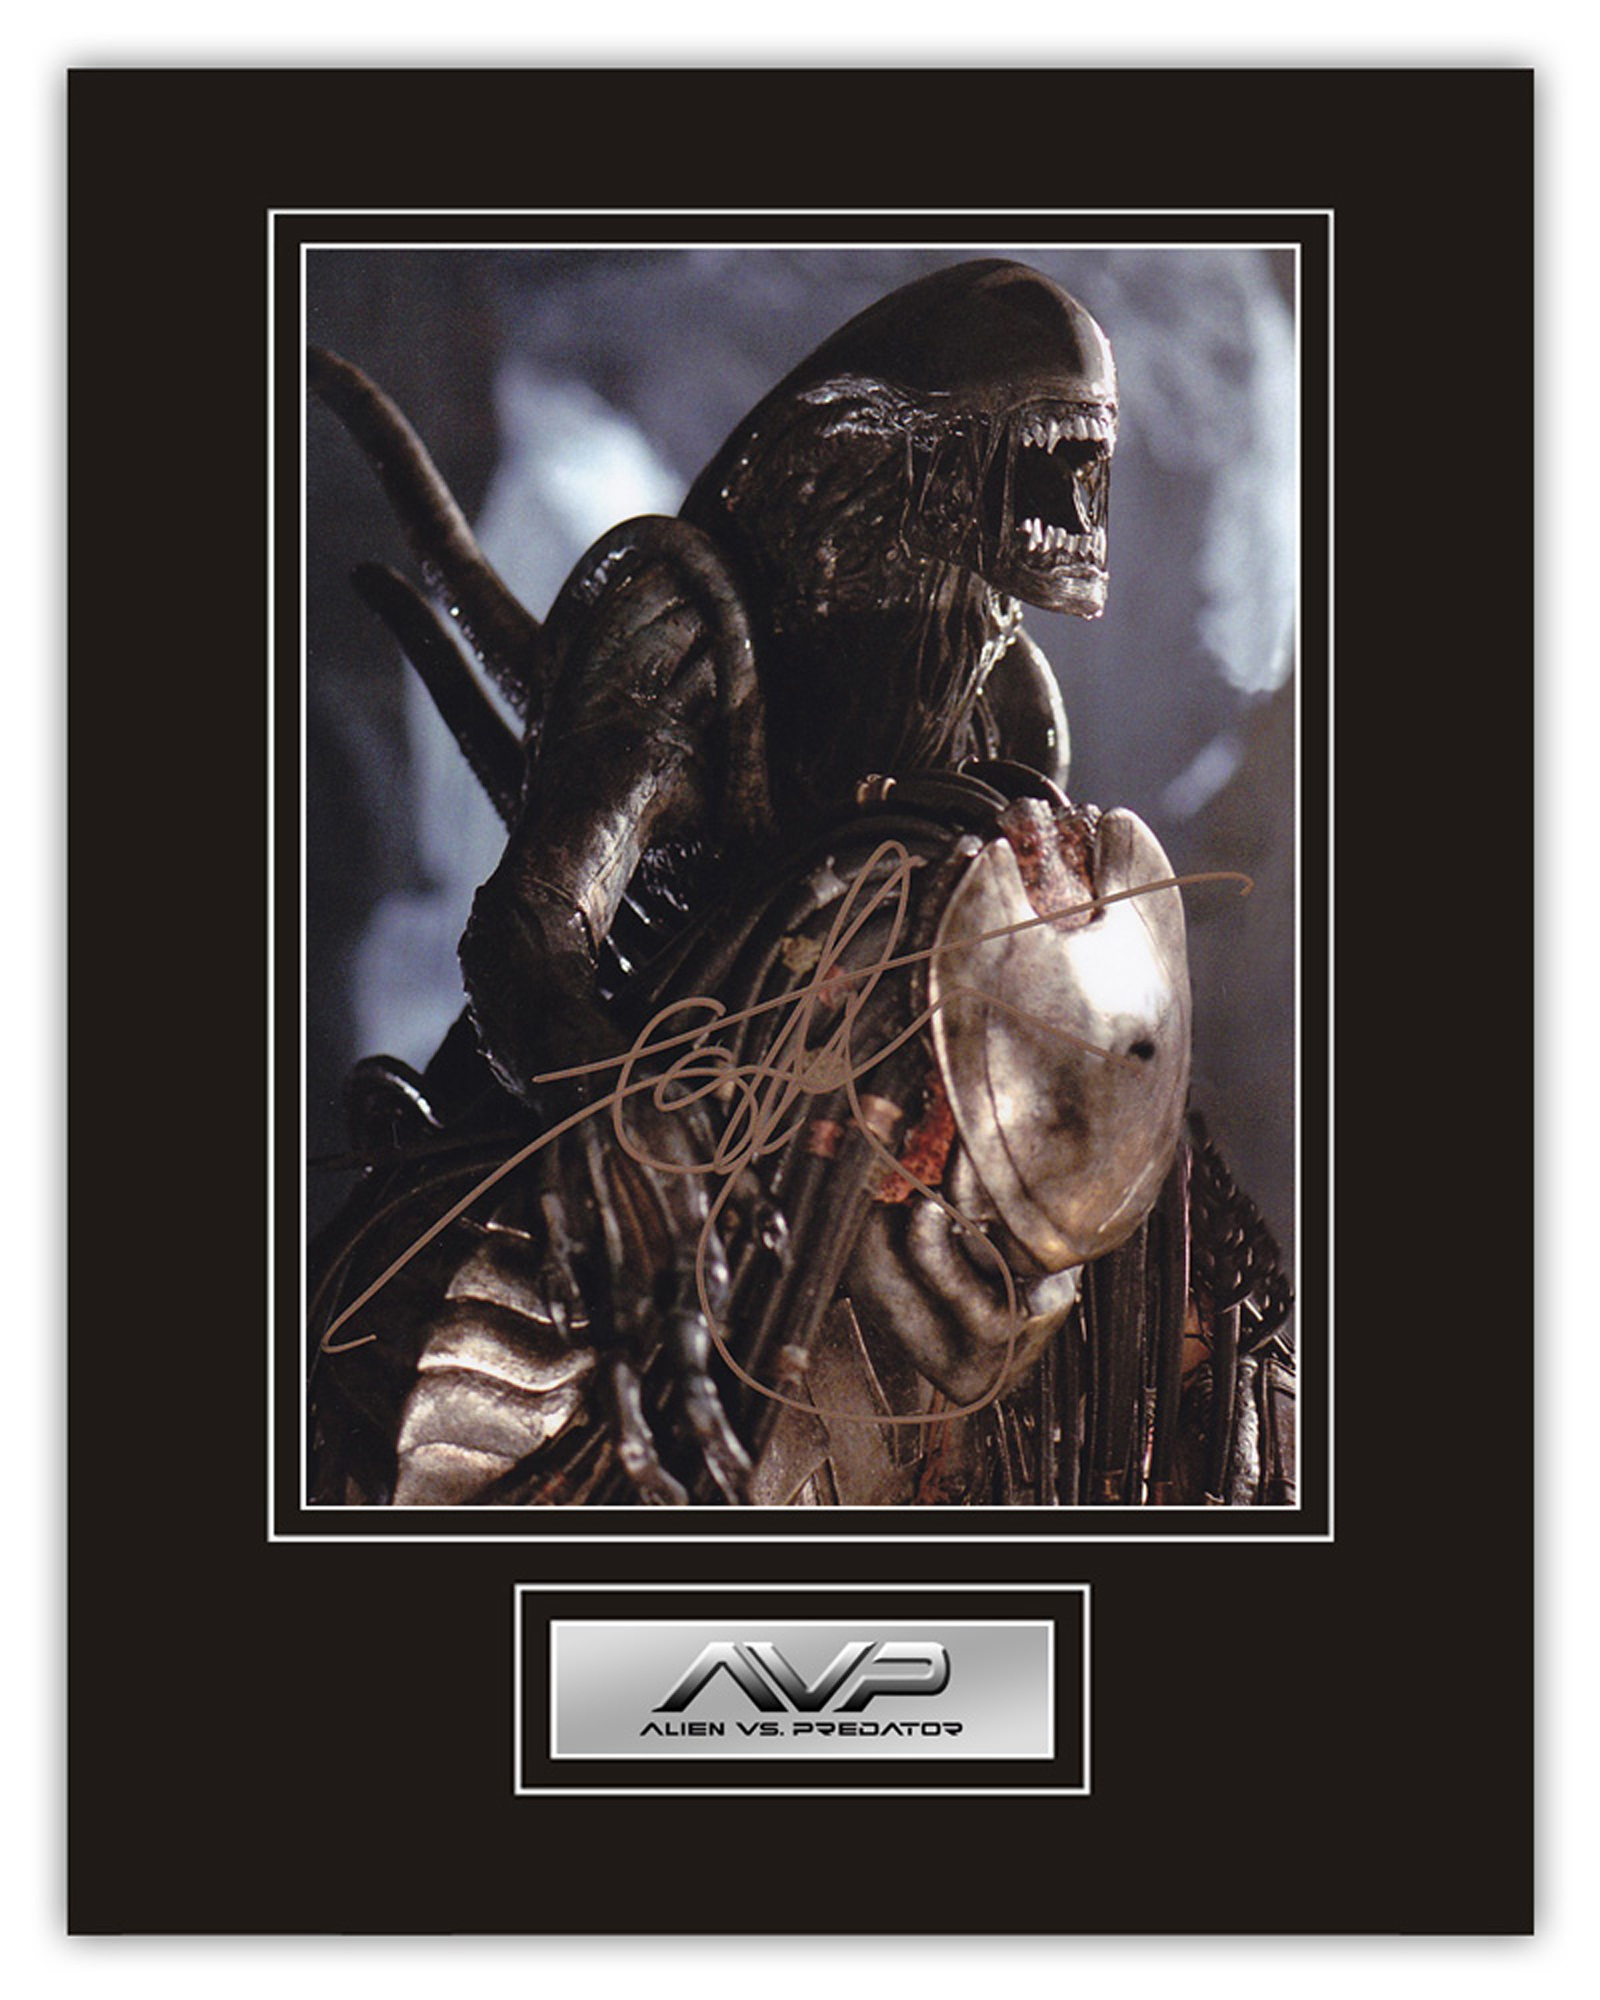 Stunning Display! Alien vs Predator Ian Whyte hand signed professionally mounted display. This